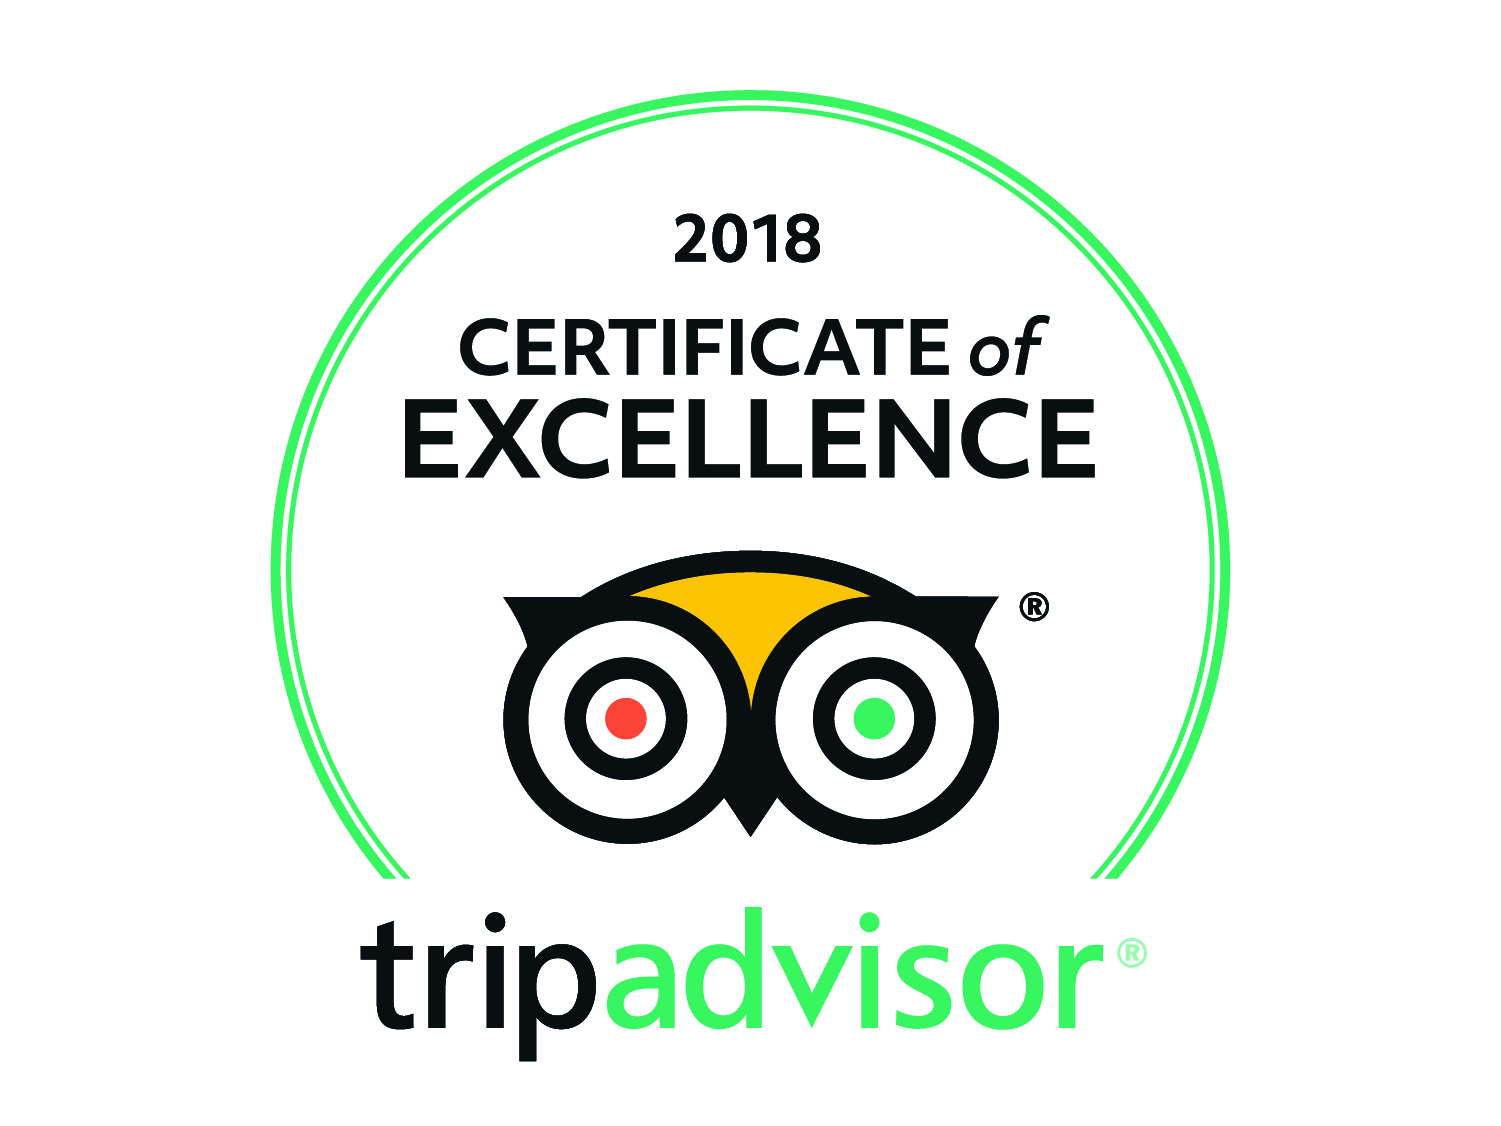 2018 Marble Zip Tours Trip Advisor's Certificate of Excellence